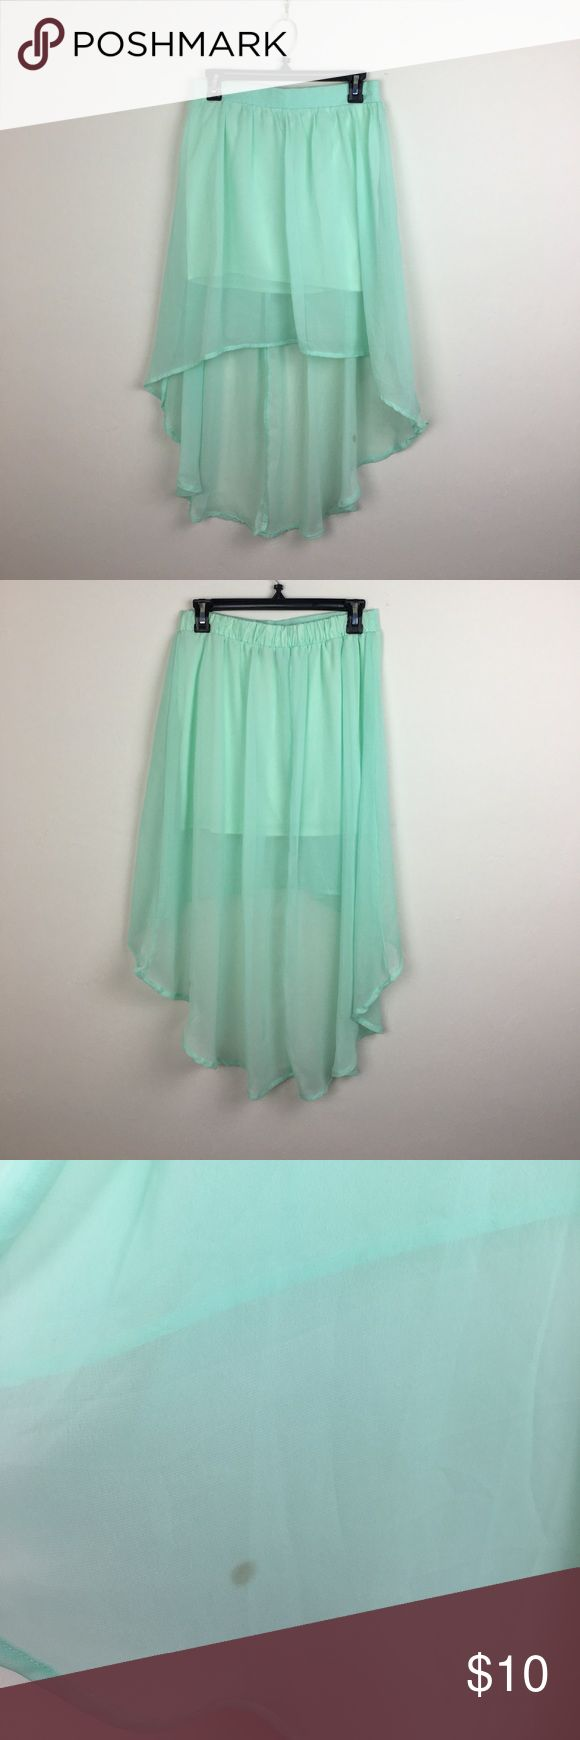 High Low Mint Green Skirt High Low asymmetrical mint green Skirt   Small stain on tail of Skirt  Great Condition Charlotte Russe Skirts High Low